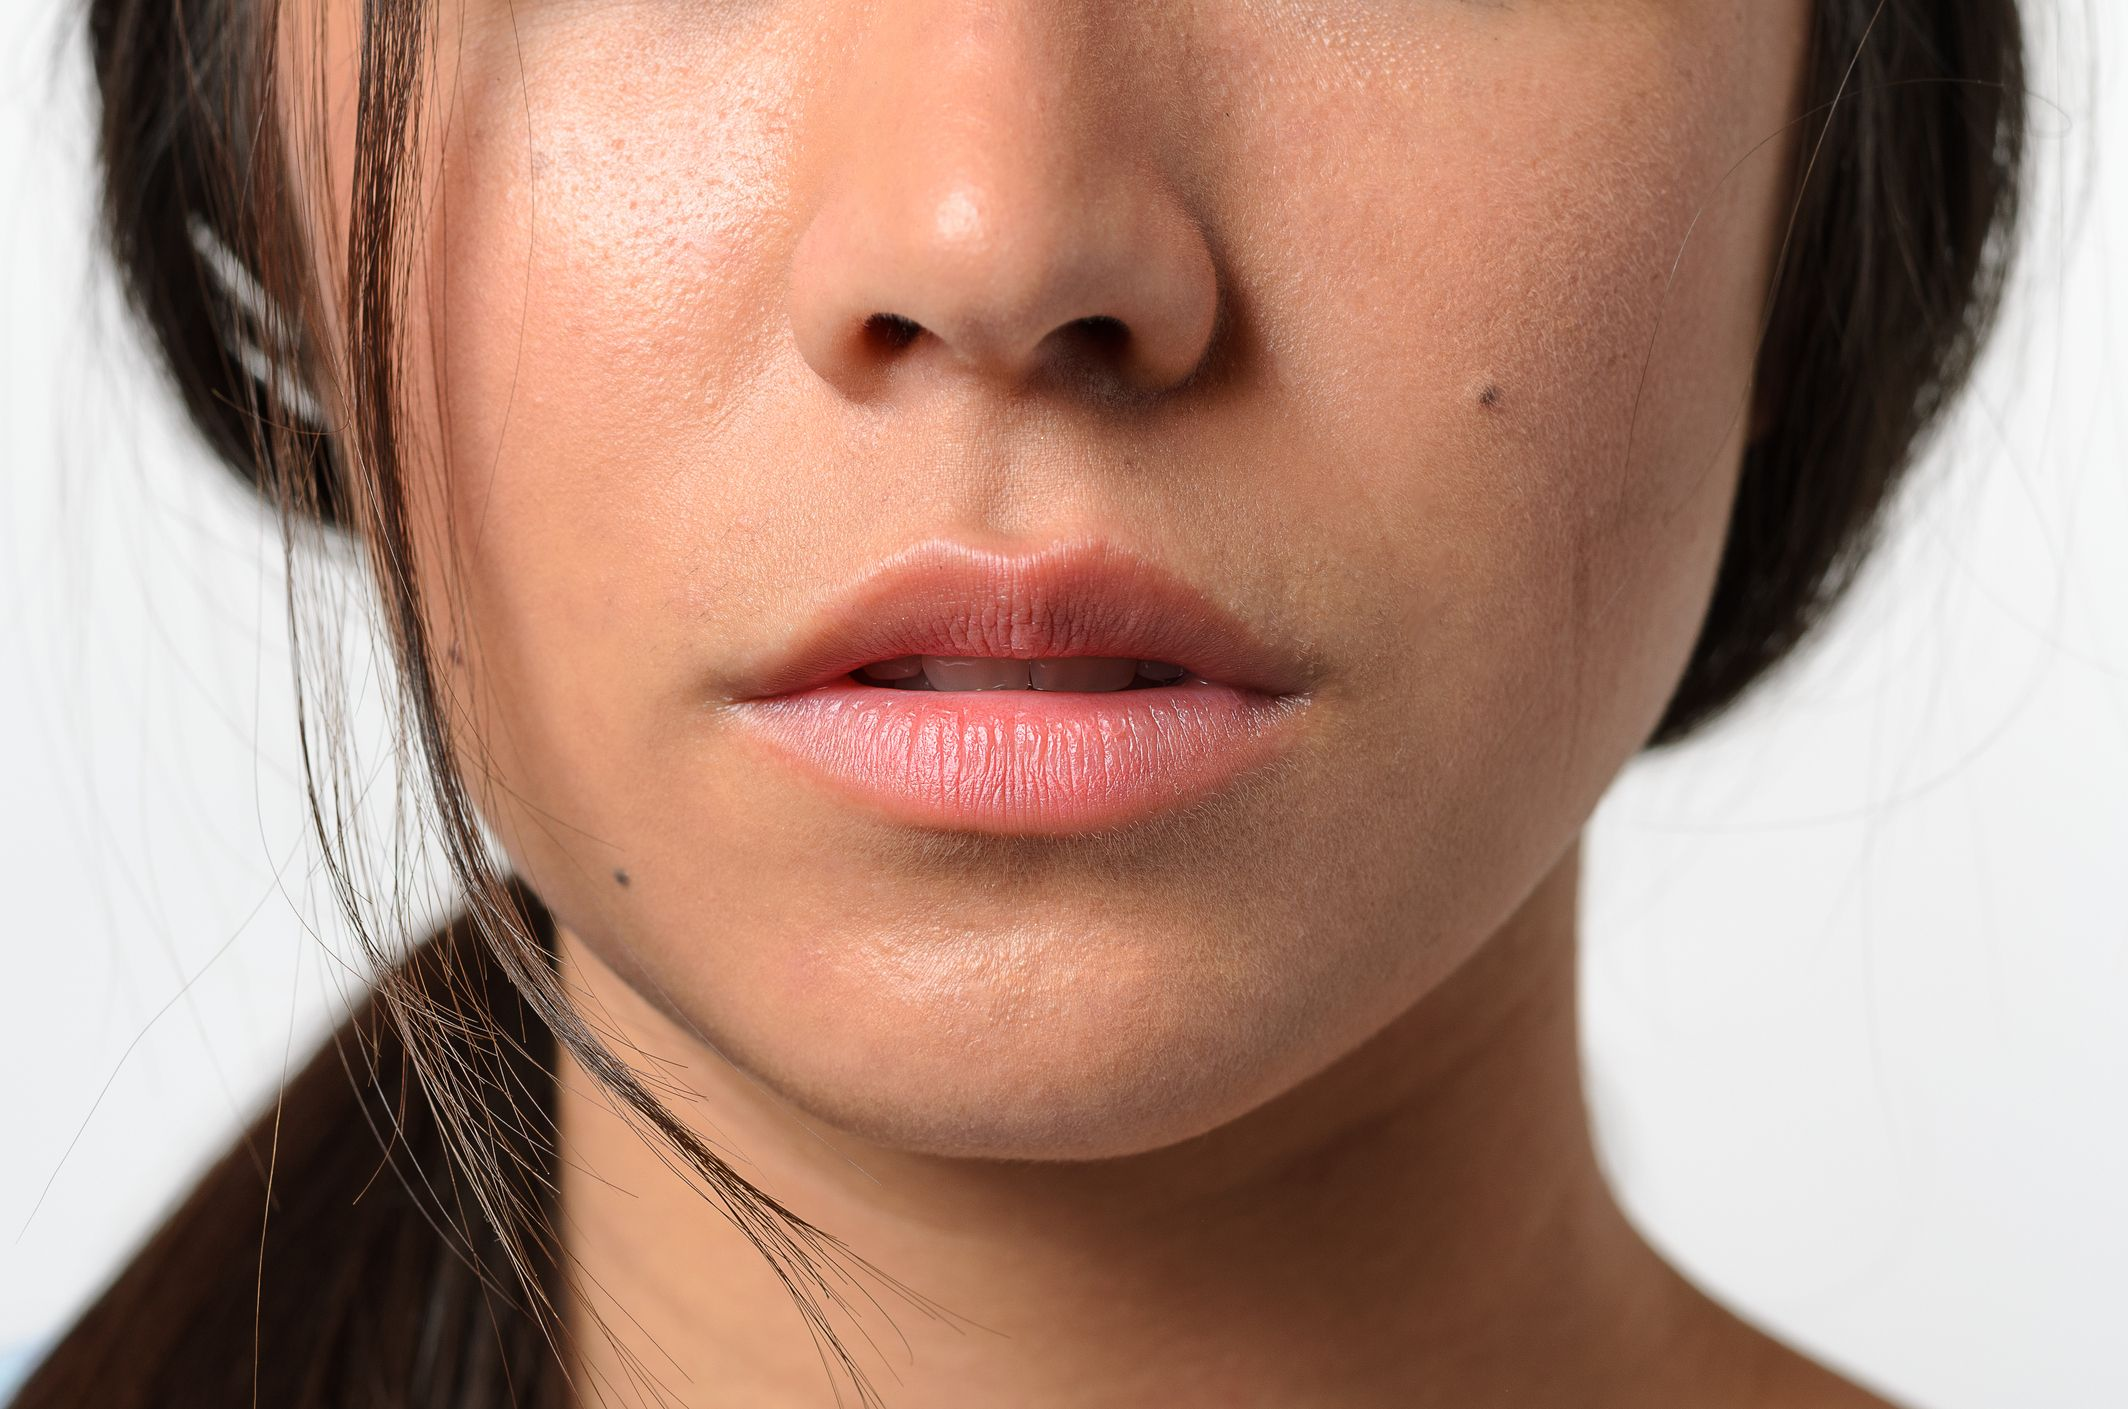 How To Get Rid Of Painful Pimples In Your Nose